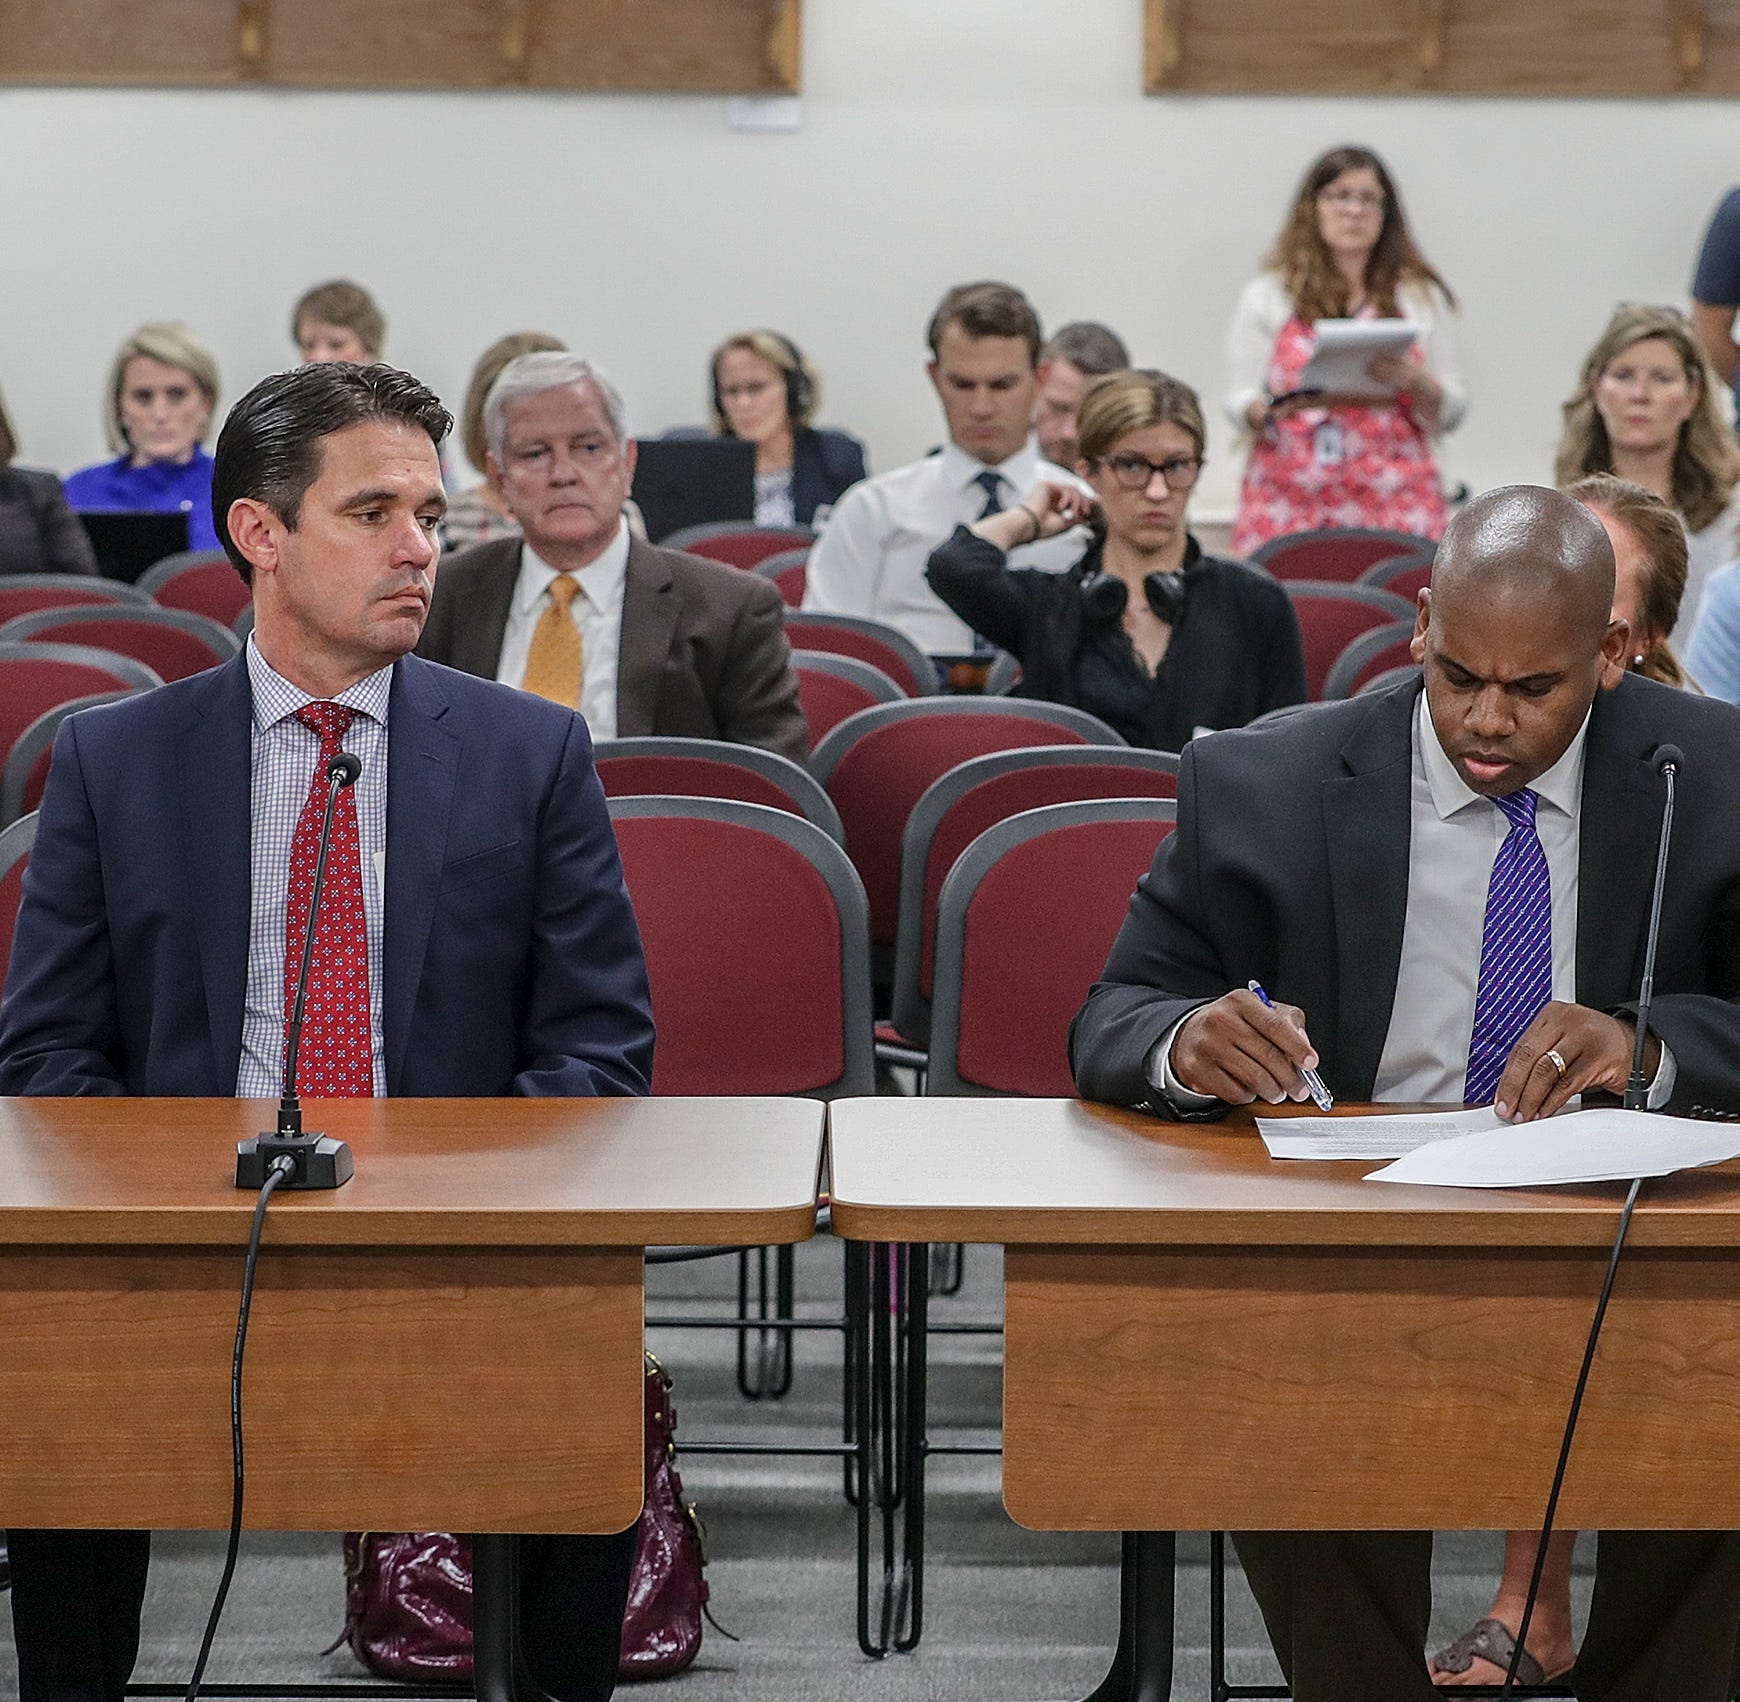 JCPS Superintendent Marty Pollio appears before the Kentucky Board of Education with interim Education Commissioner Wayne Lewis to dismiss the appeals hearing that would determine whether the state takes over JCPS.August 29, 2018